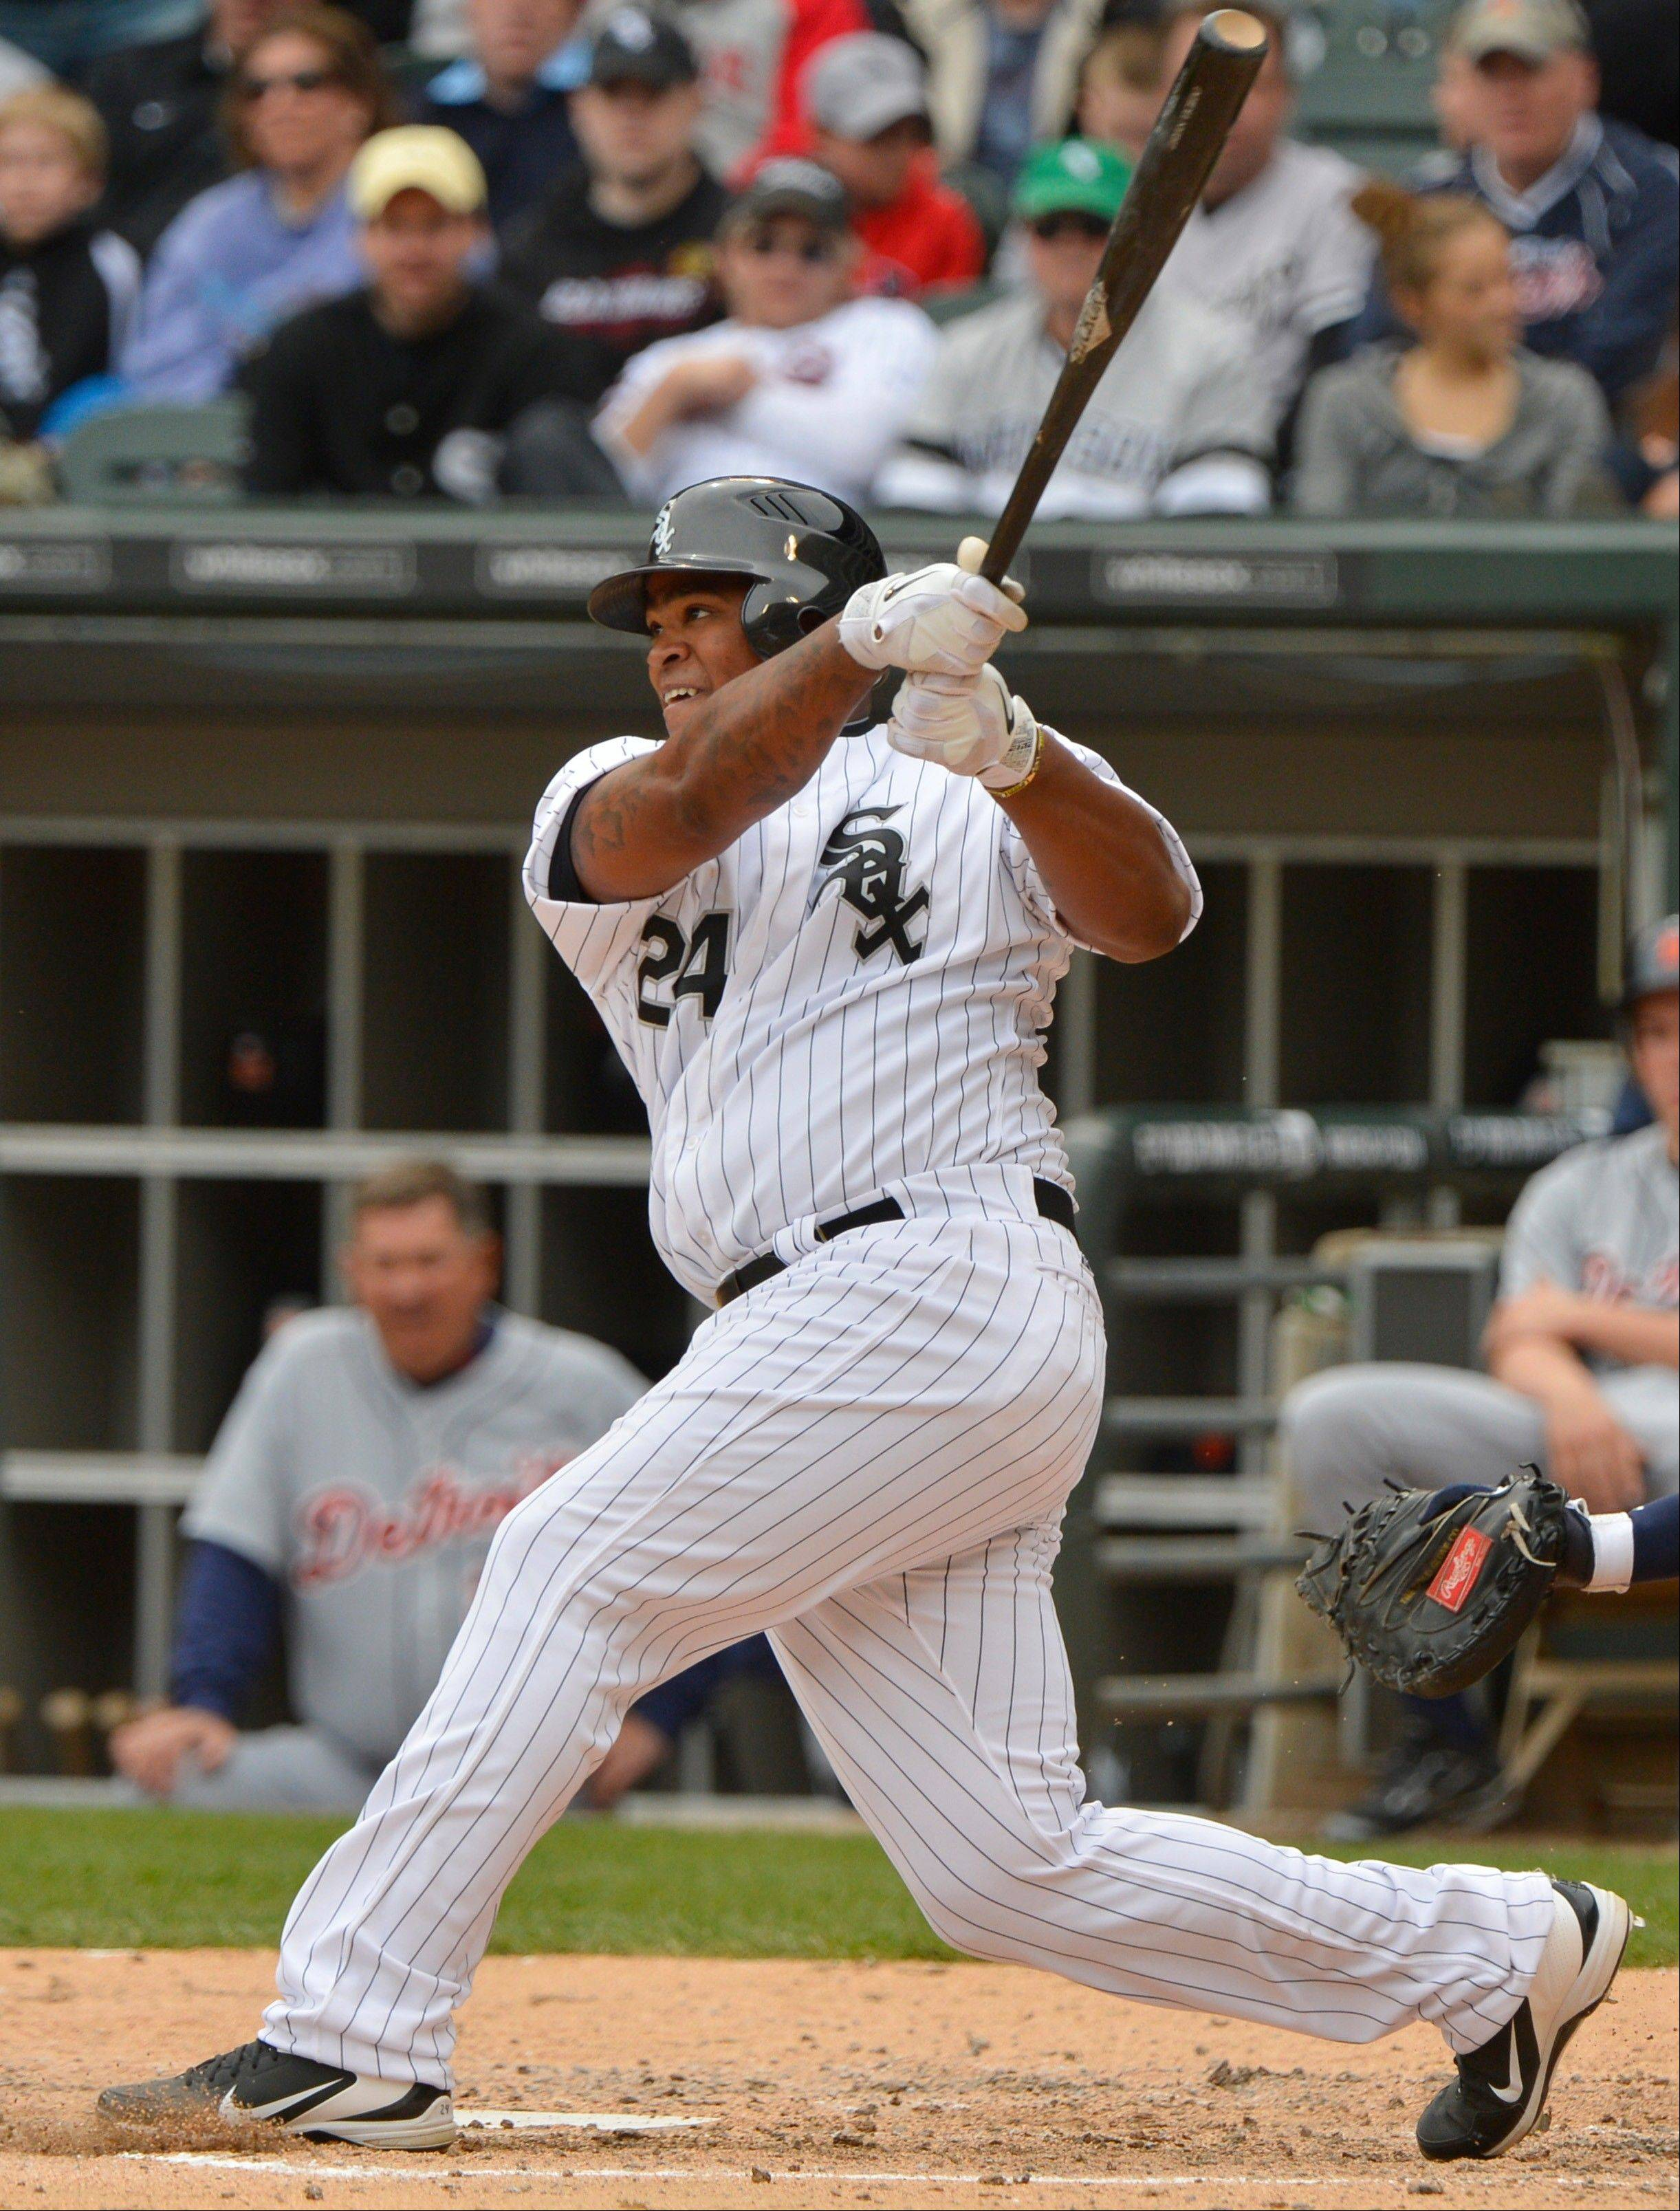 Chicago White Sox's Dayan Viciedo hits a solo home run during the fifth inning.